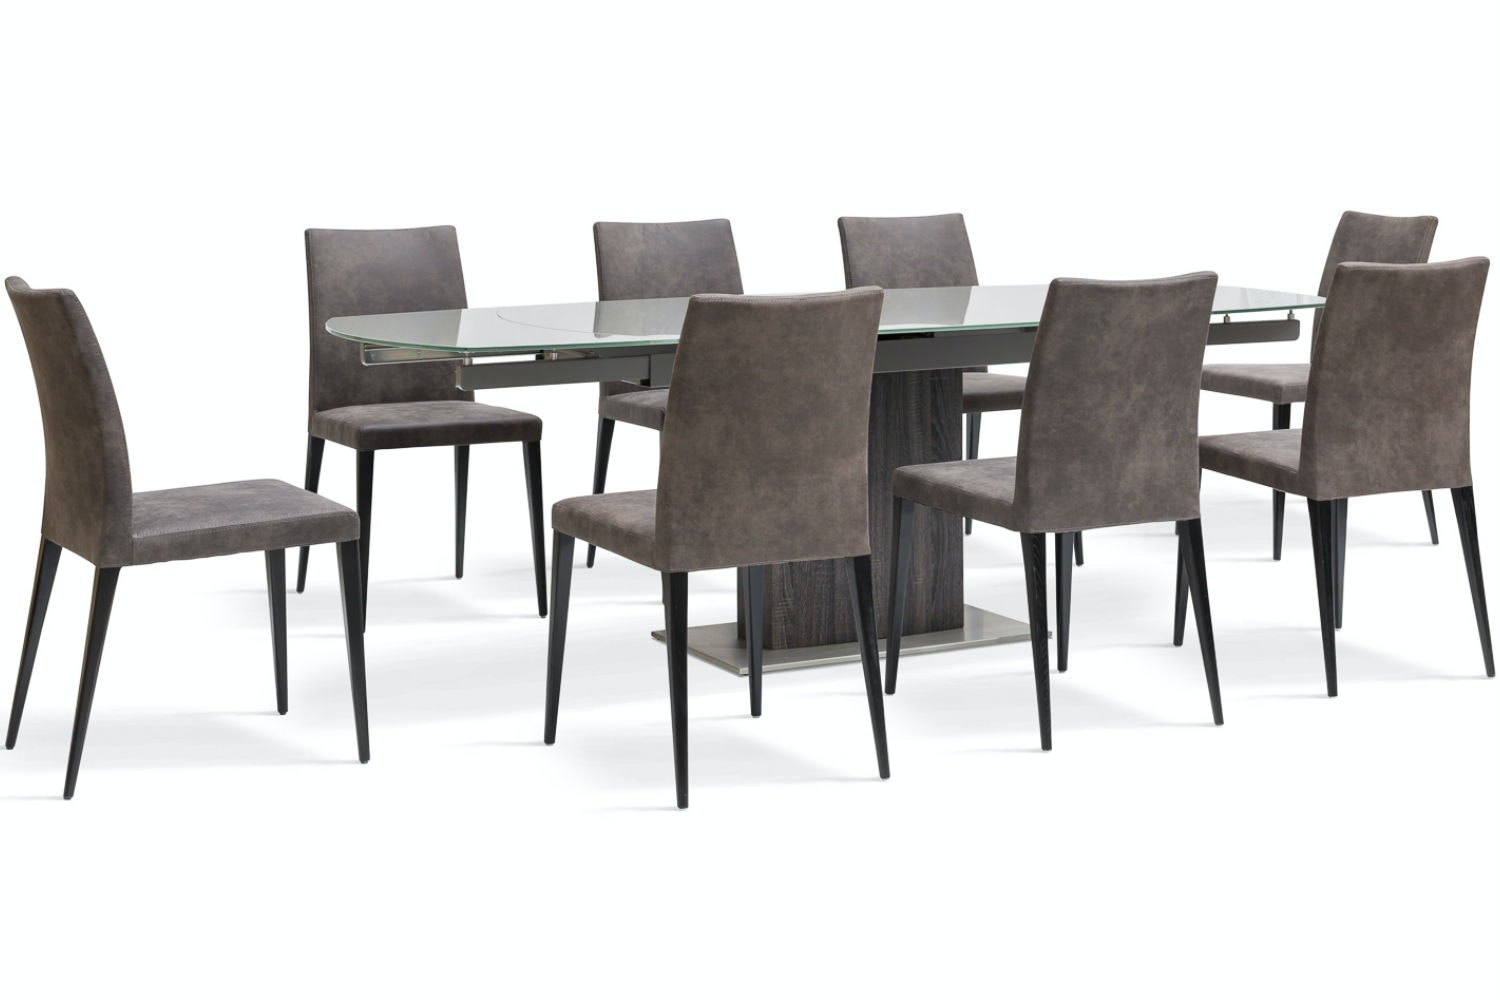 Lucci 9 Piece Dining Set | Low Calvino Dining Chairs | Dark